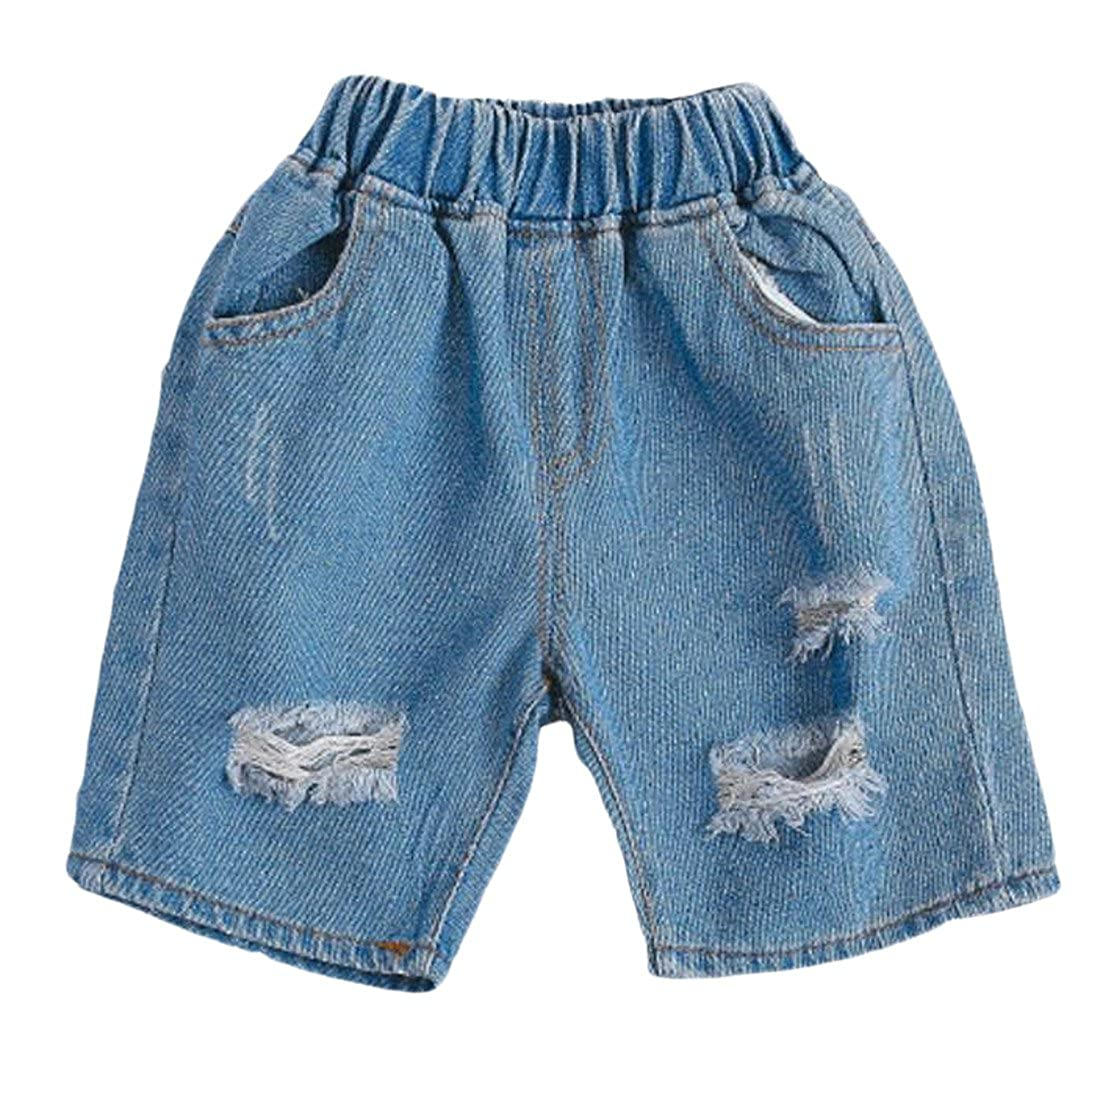 JSY Little Boys Faded Elastic Waist Holes Washed Denim Jeans Shorts